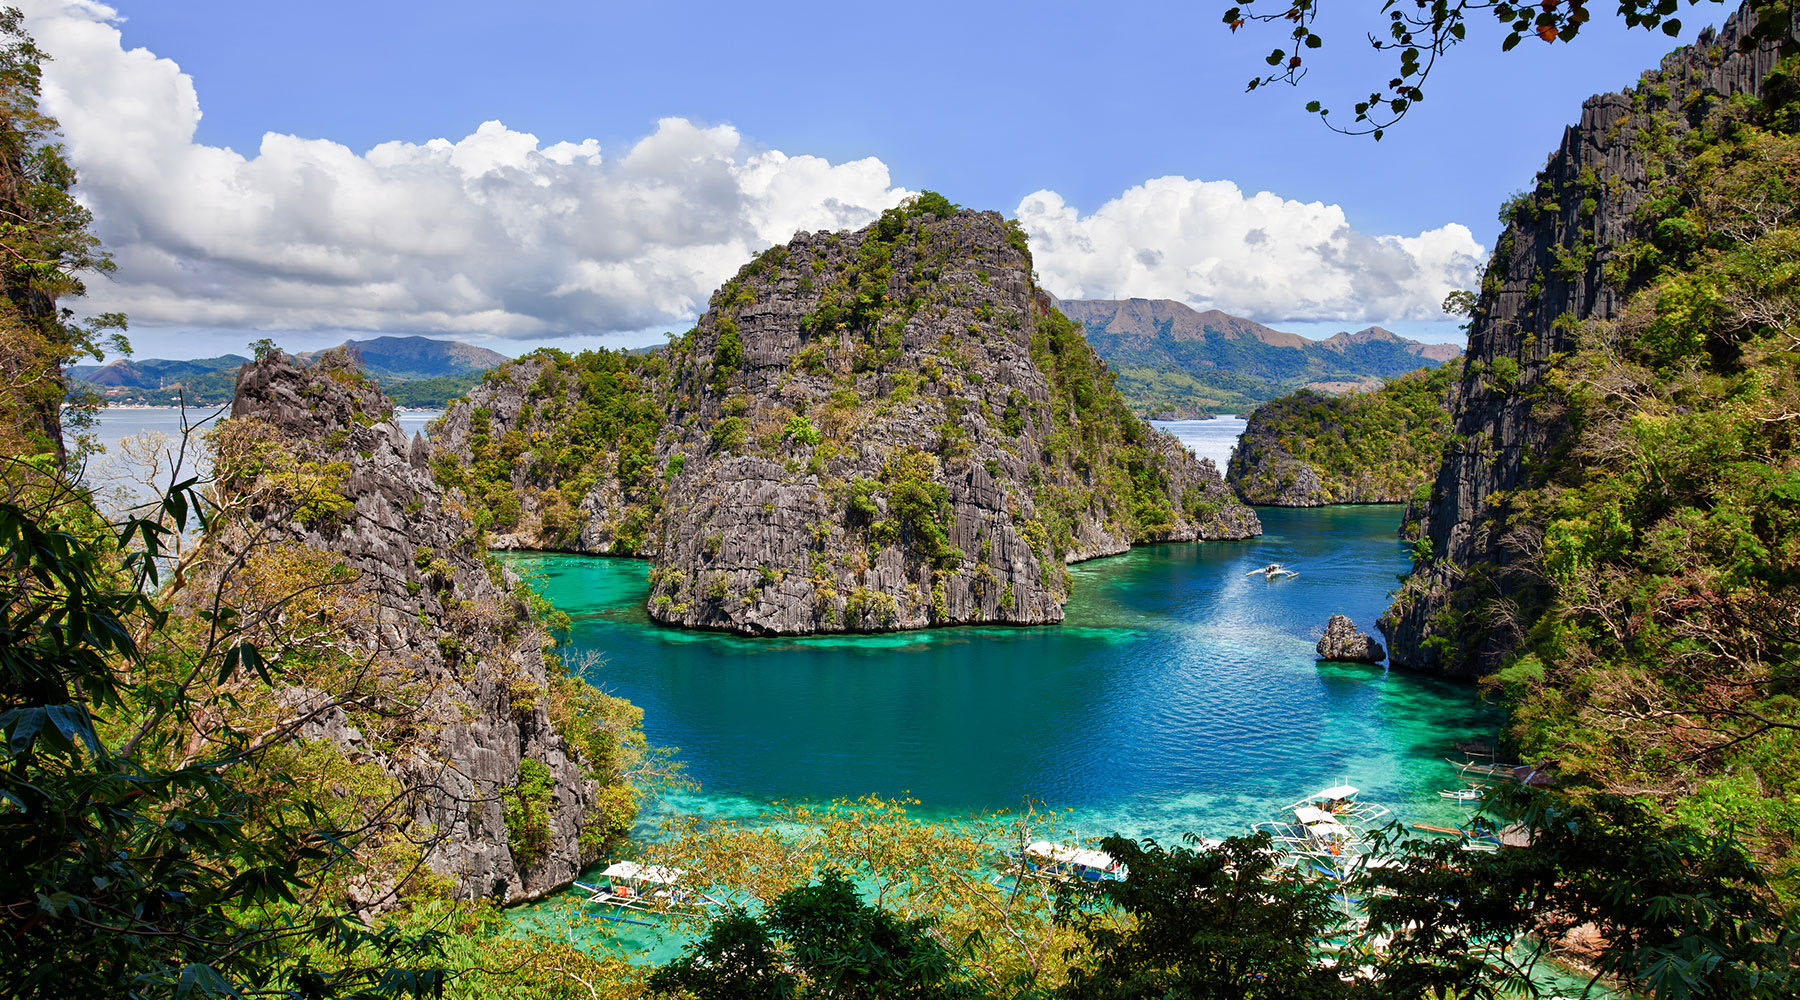 The lagoons of Coron, Palawan Philippines